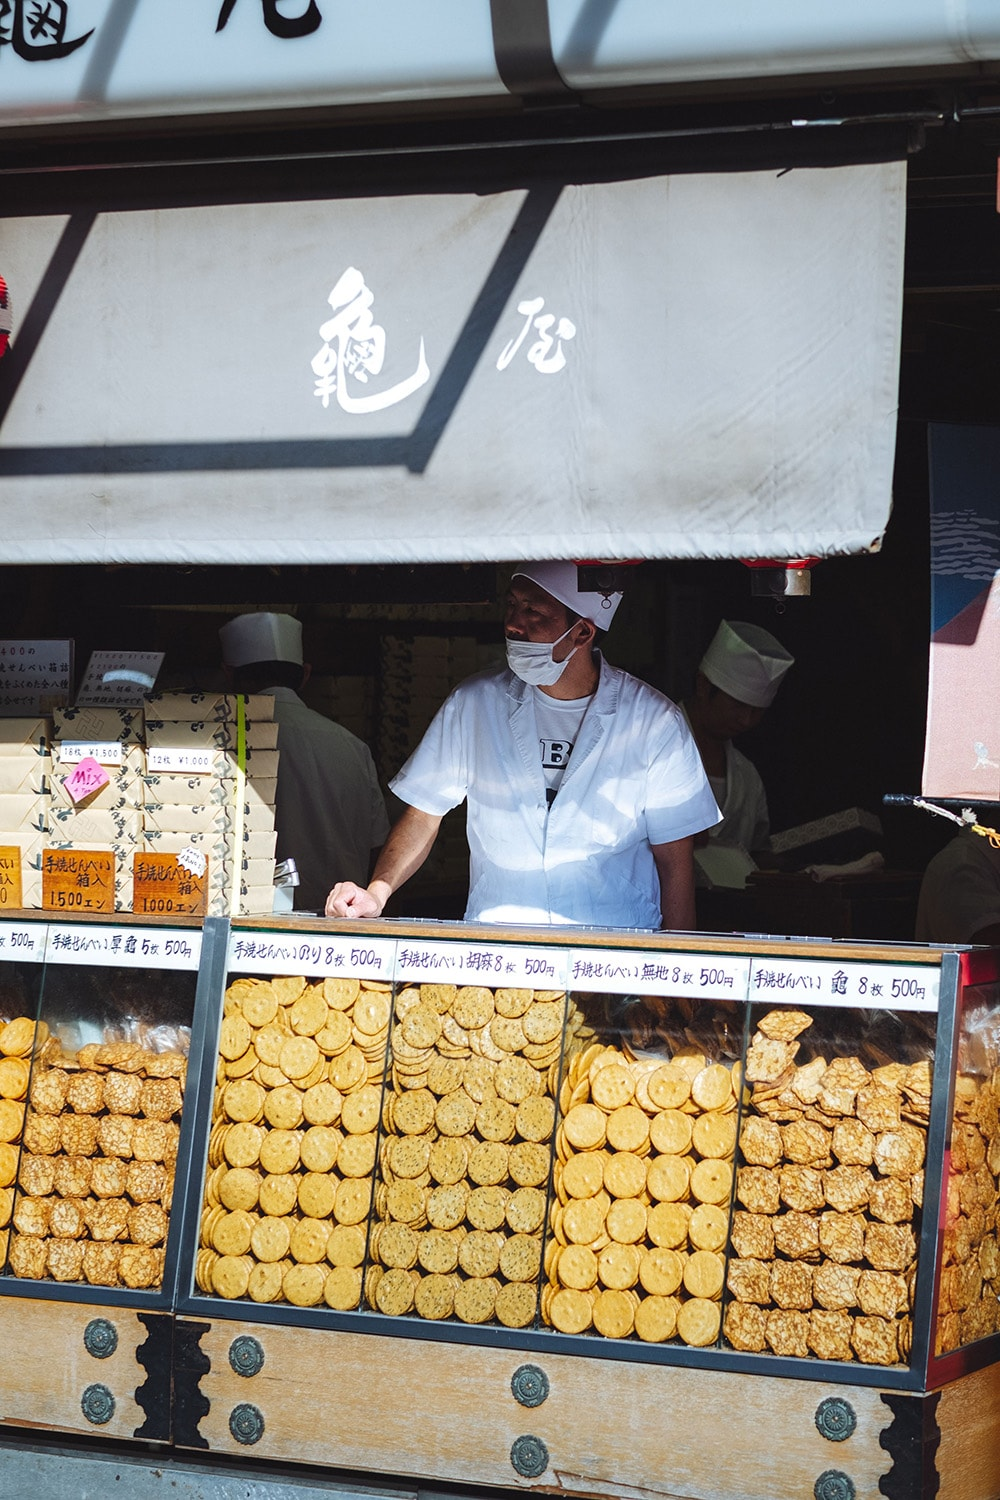 food stall owner in Tokyo